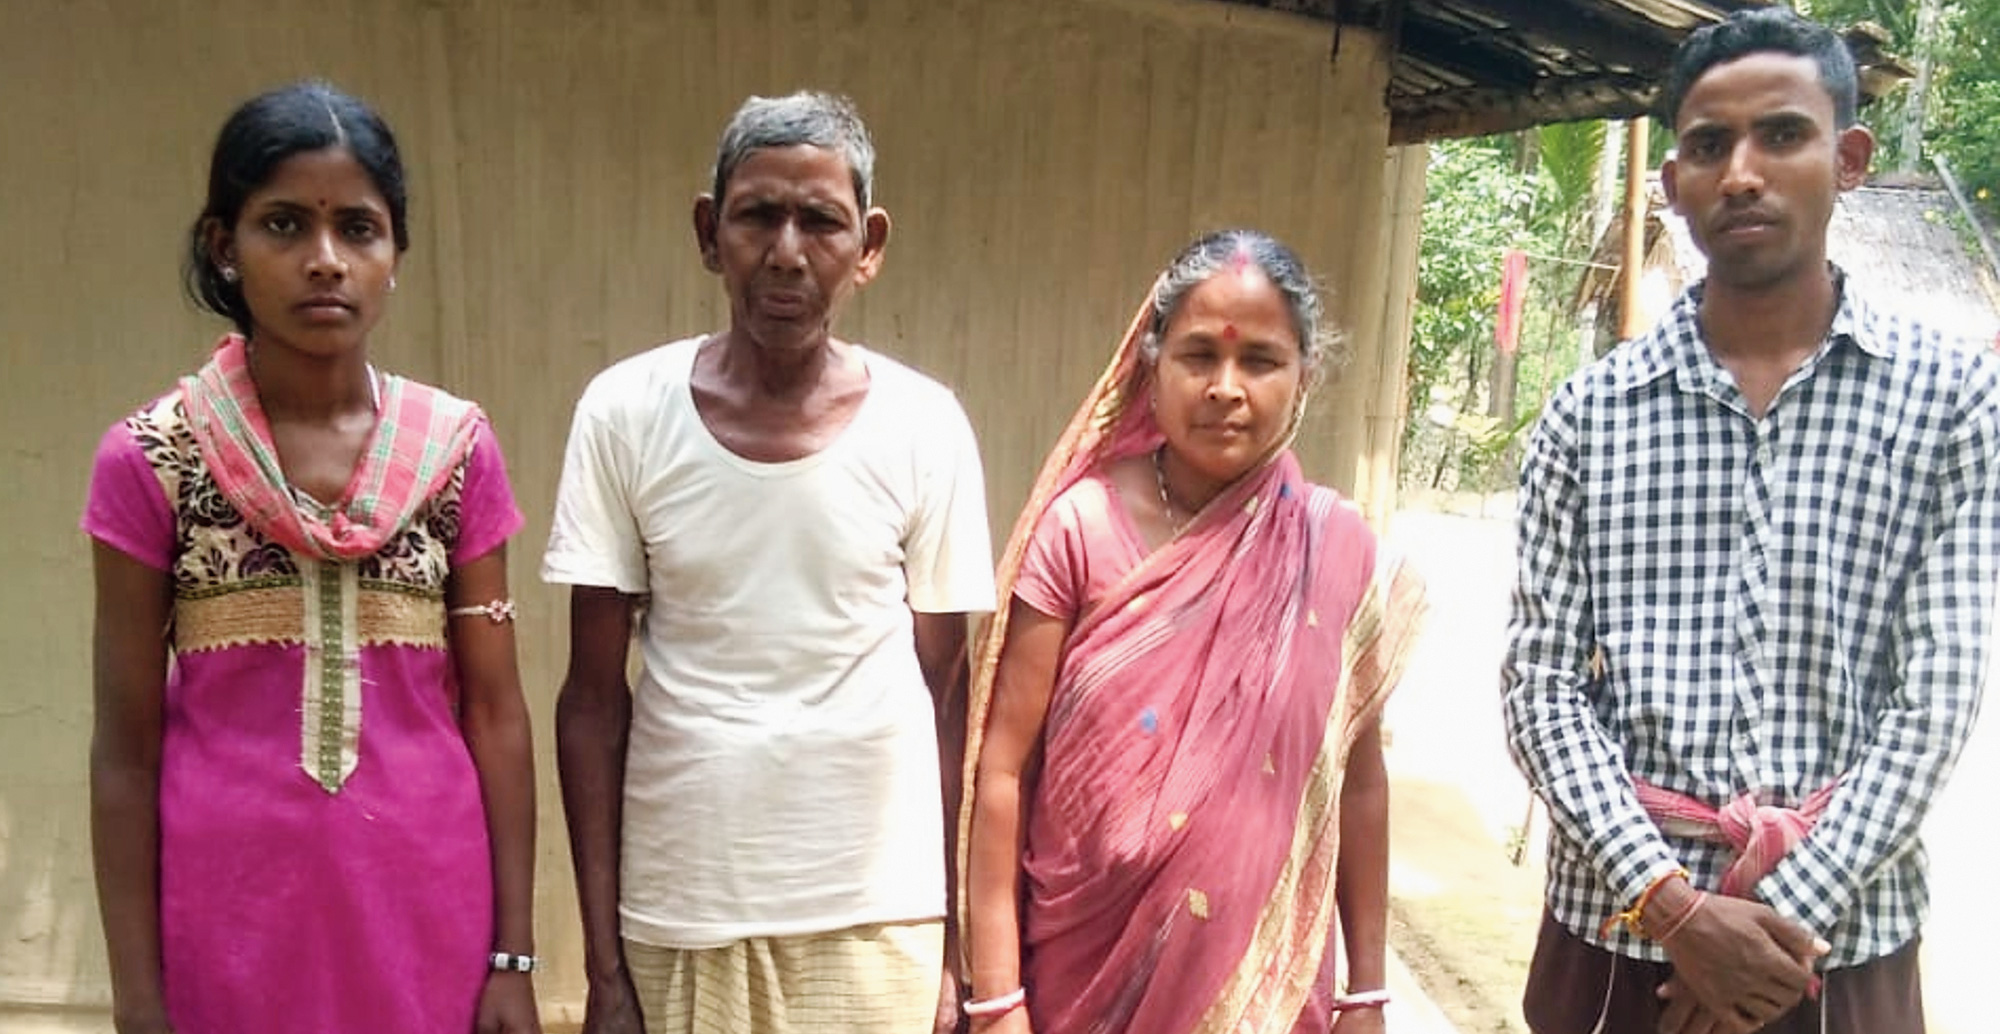 Kumud Ram Das with his family.